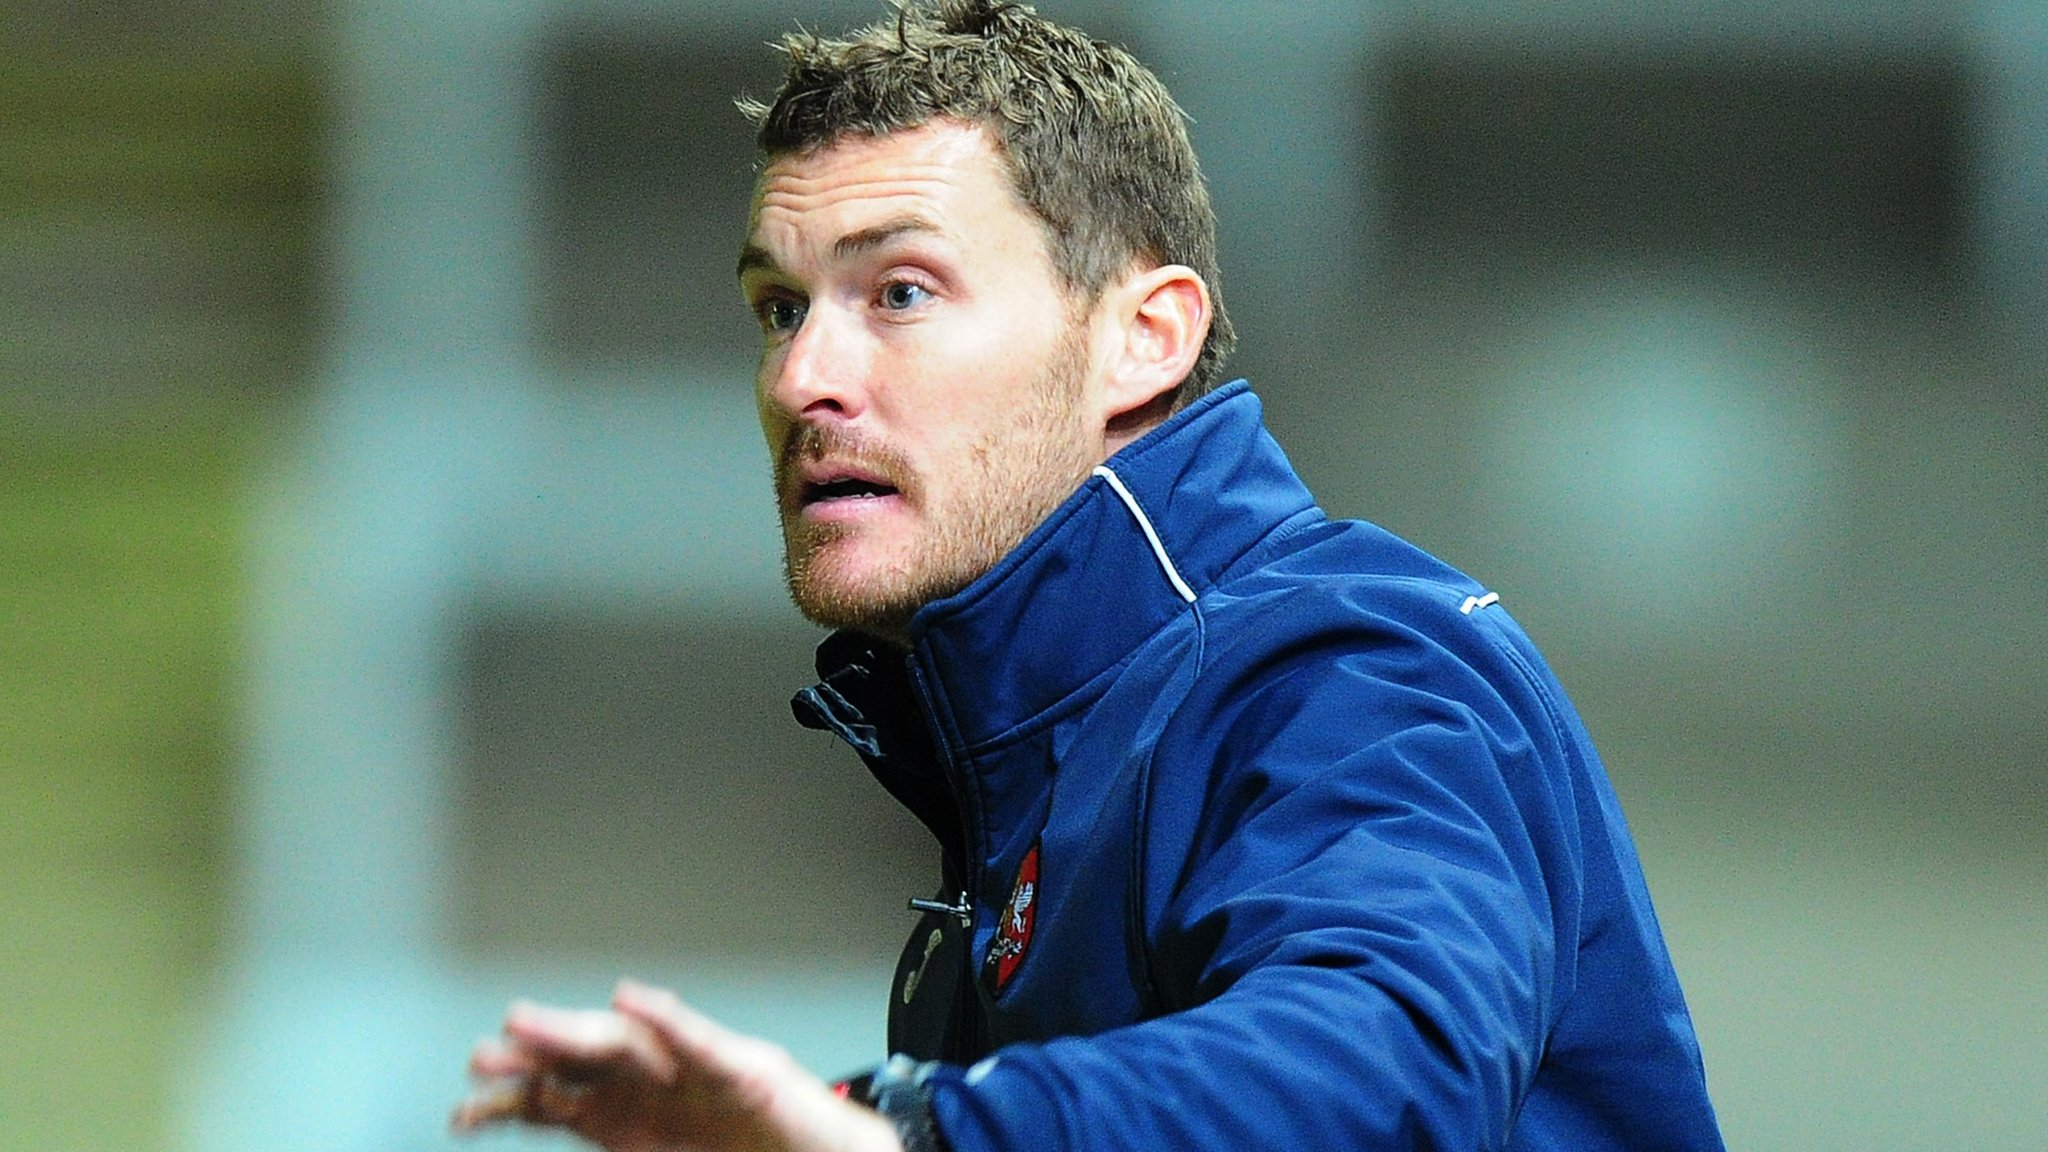 Exeter City get 'reality check' after first dropped points - boss Matt Taylor